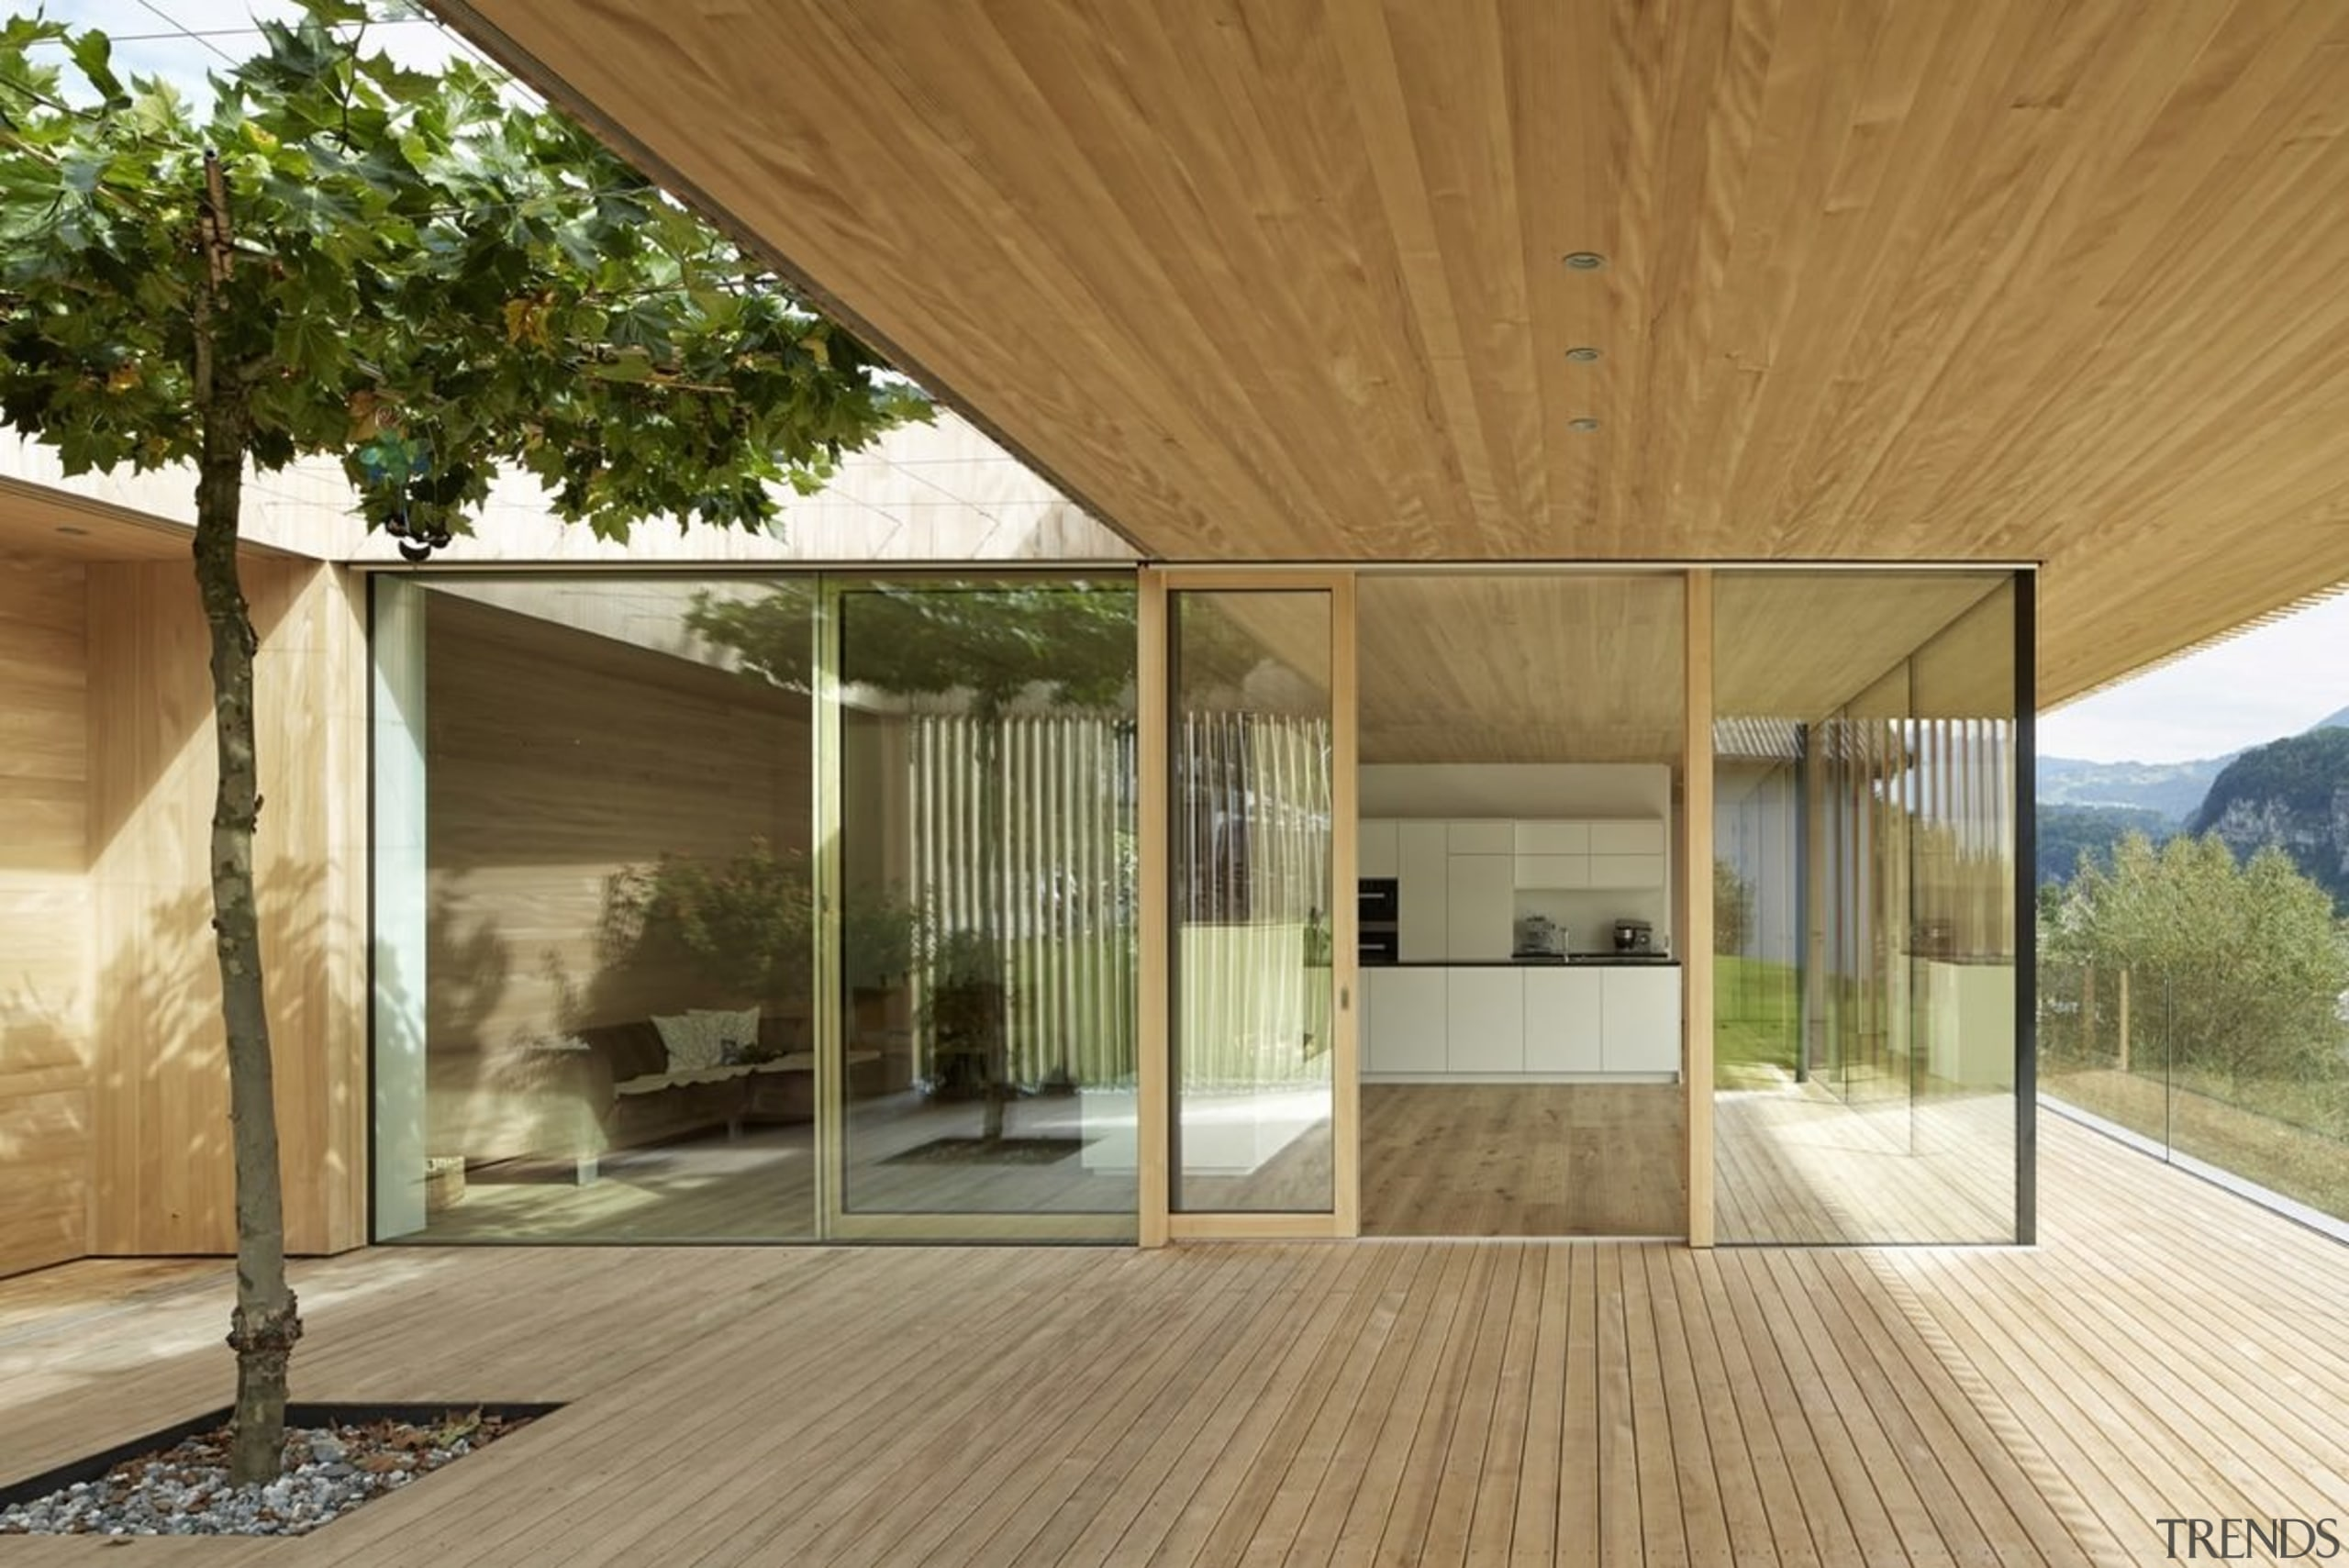 Architect: Helena Weber architectsPhotography by Adolf Bereuter architecture, floor, home, house, interior design, porch, real estate, wood, brown